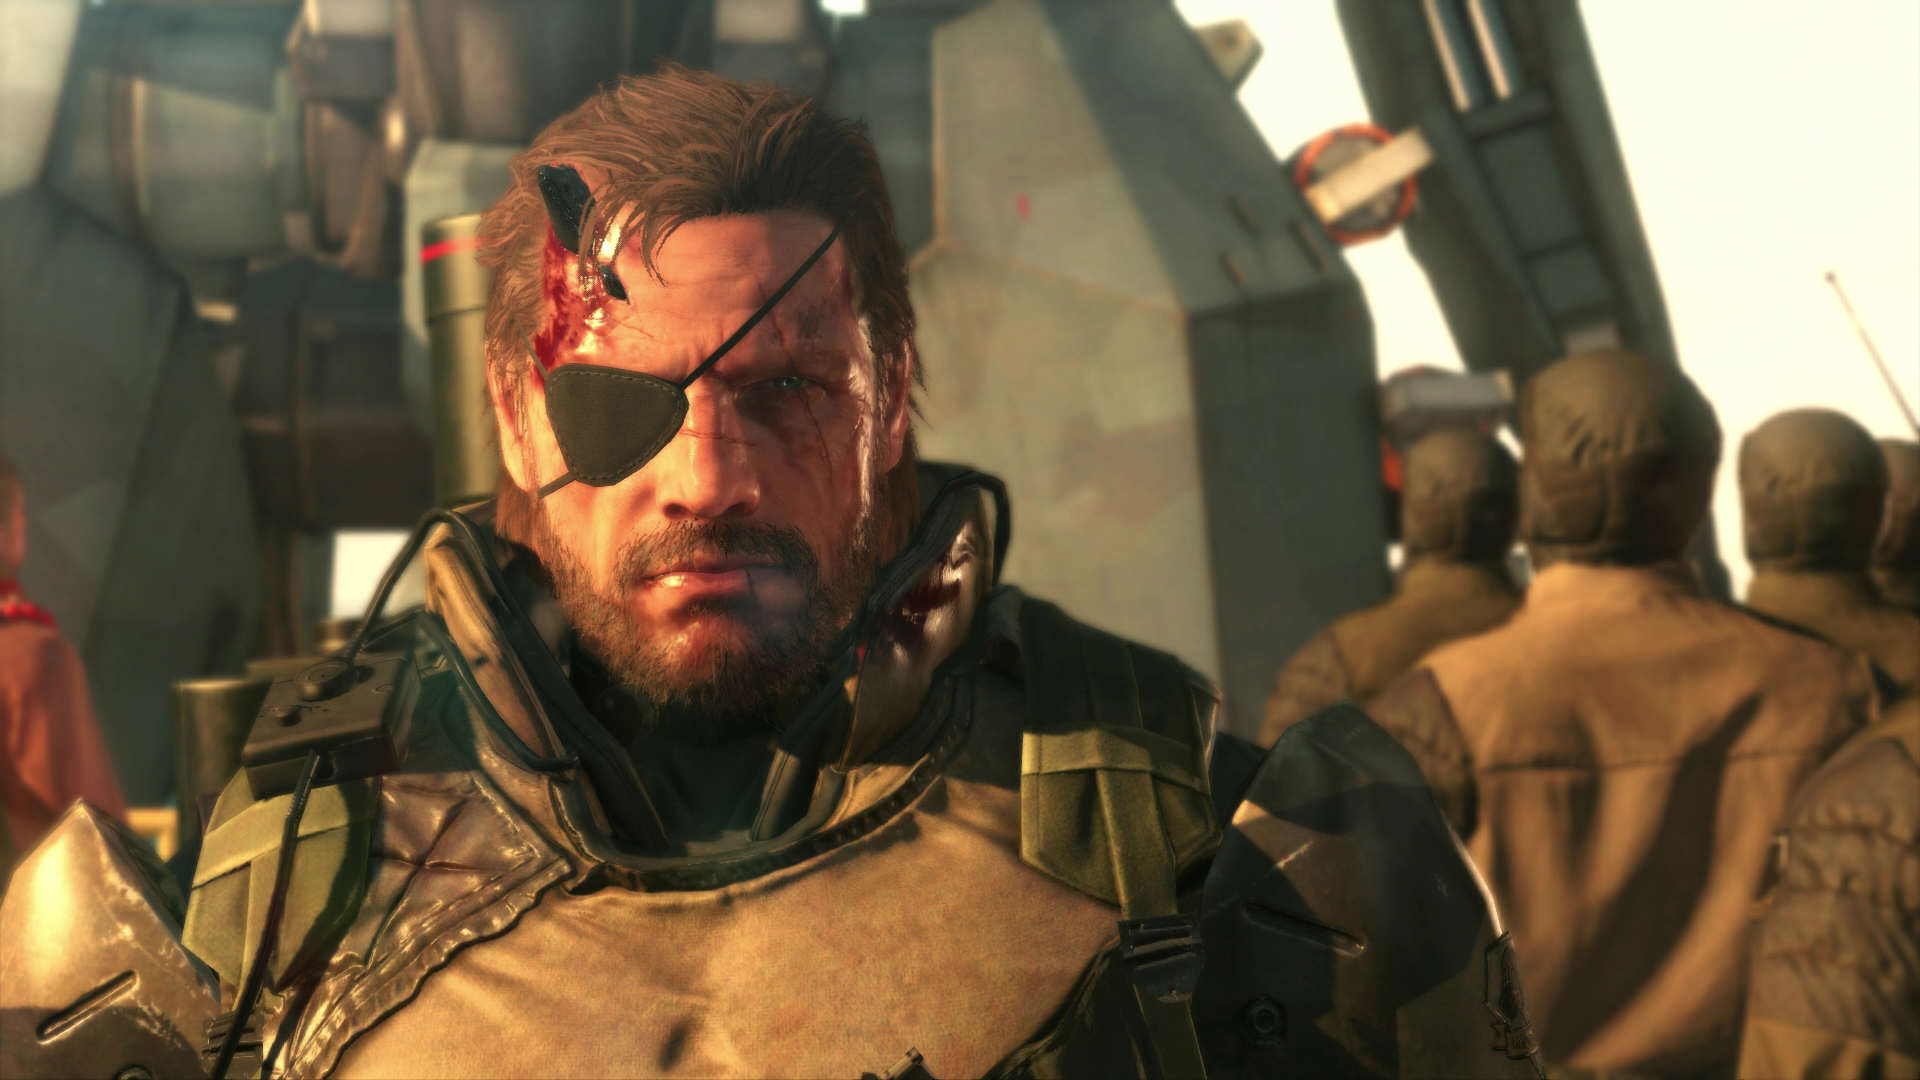 712929a42b4ea58bdd7225c124f8ff52 Konami Announce New Metal Gear Game And People Are Pissed